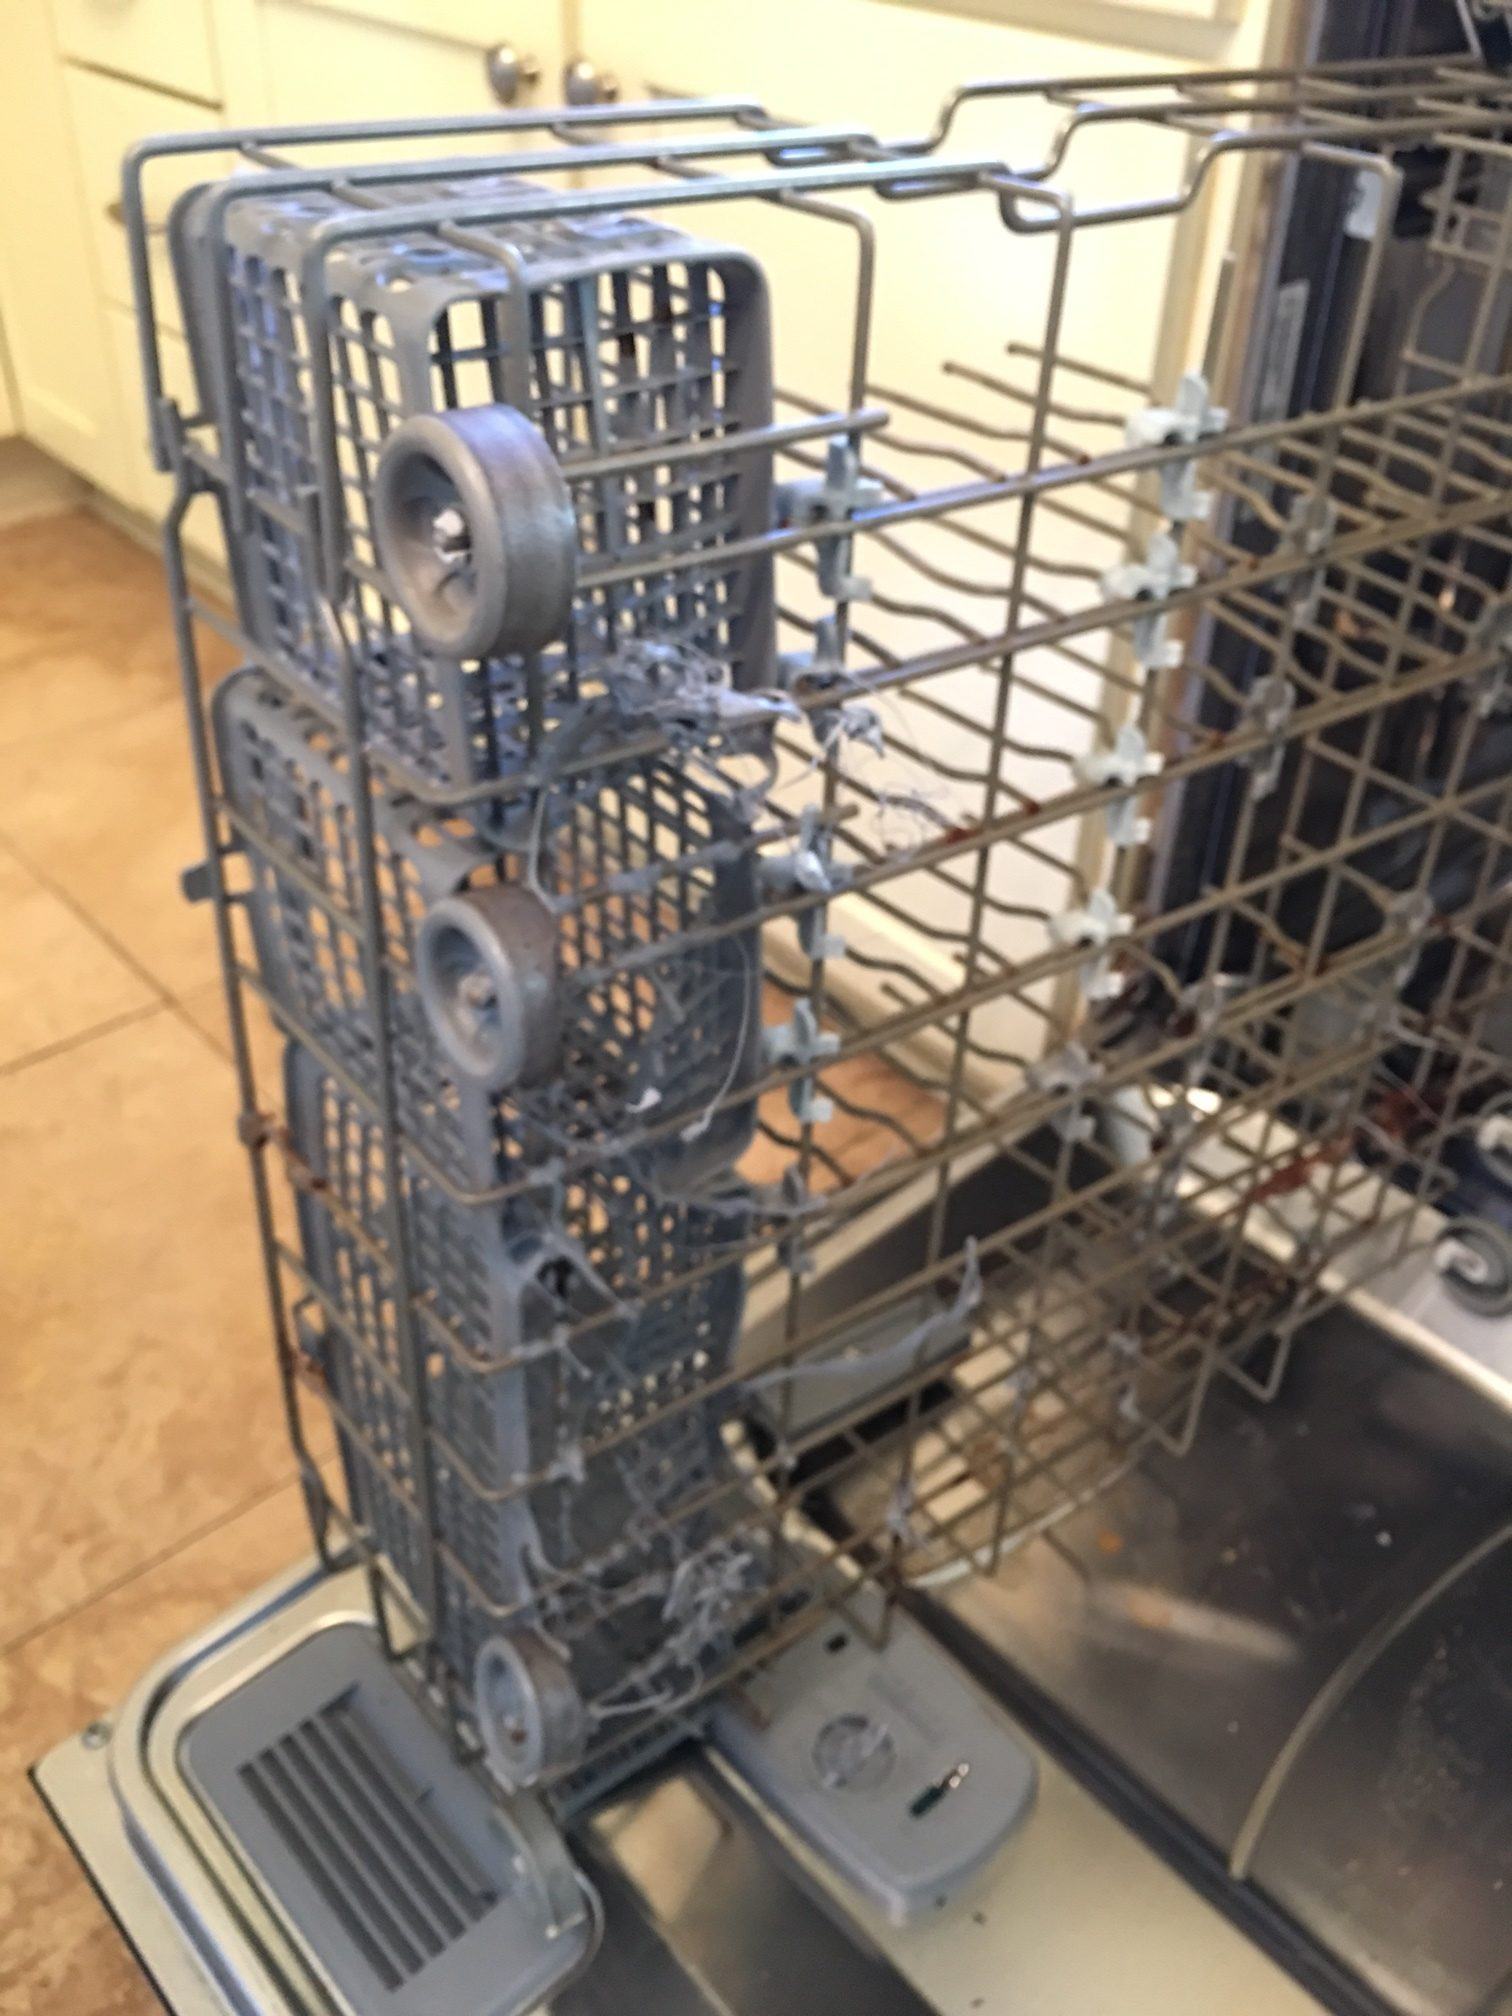 Can you hire someone to fix a GE portable dishwasher?